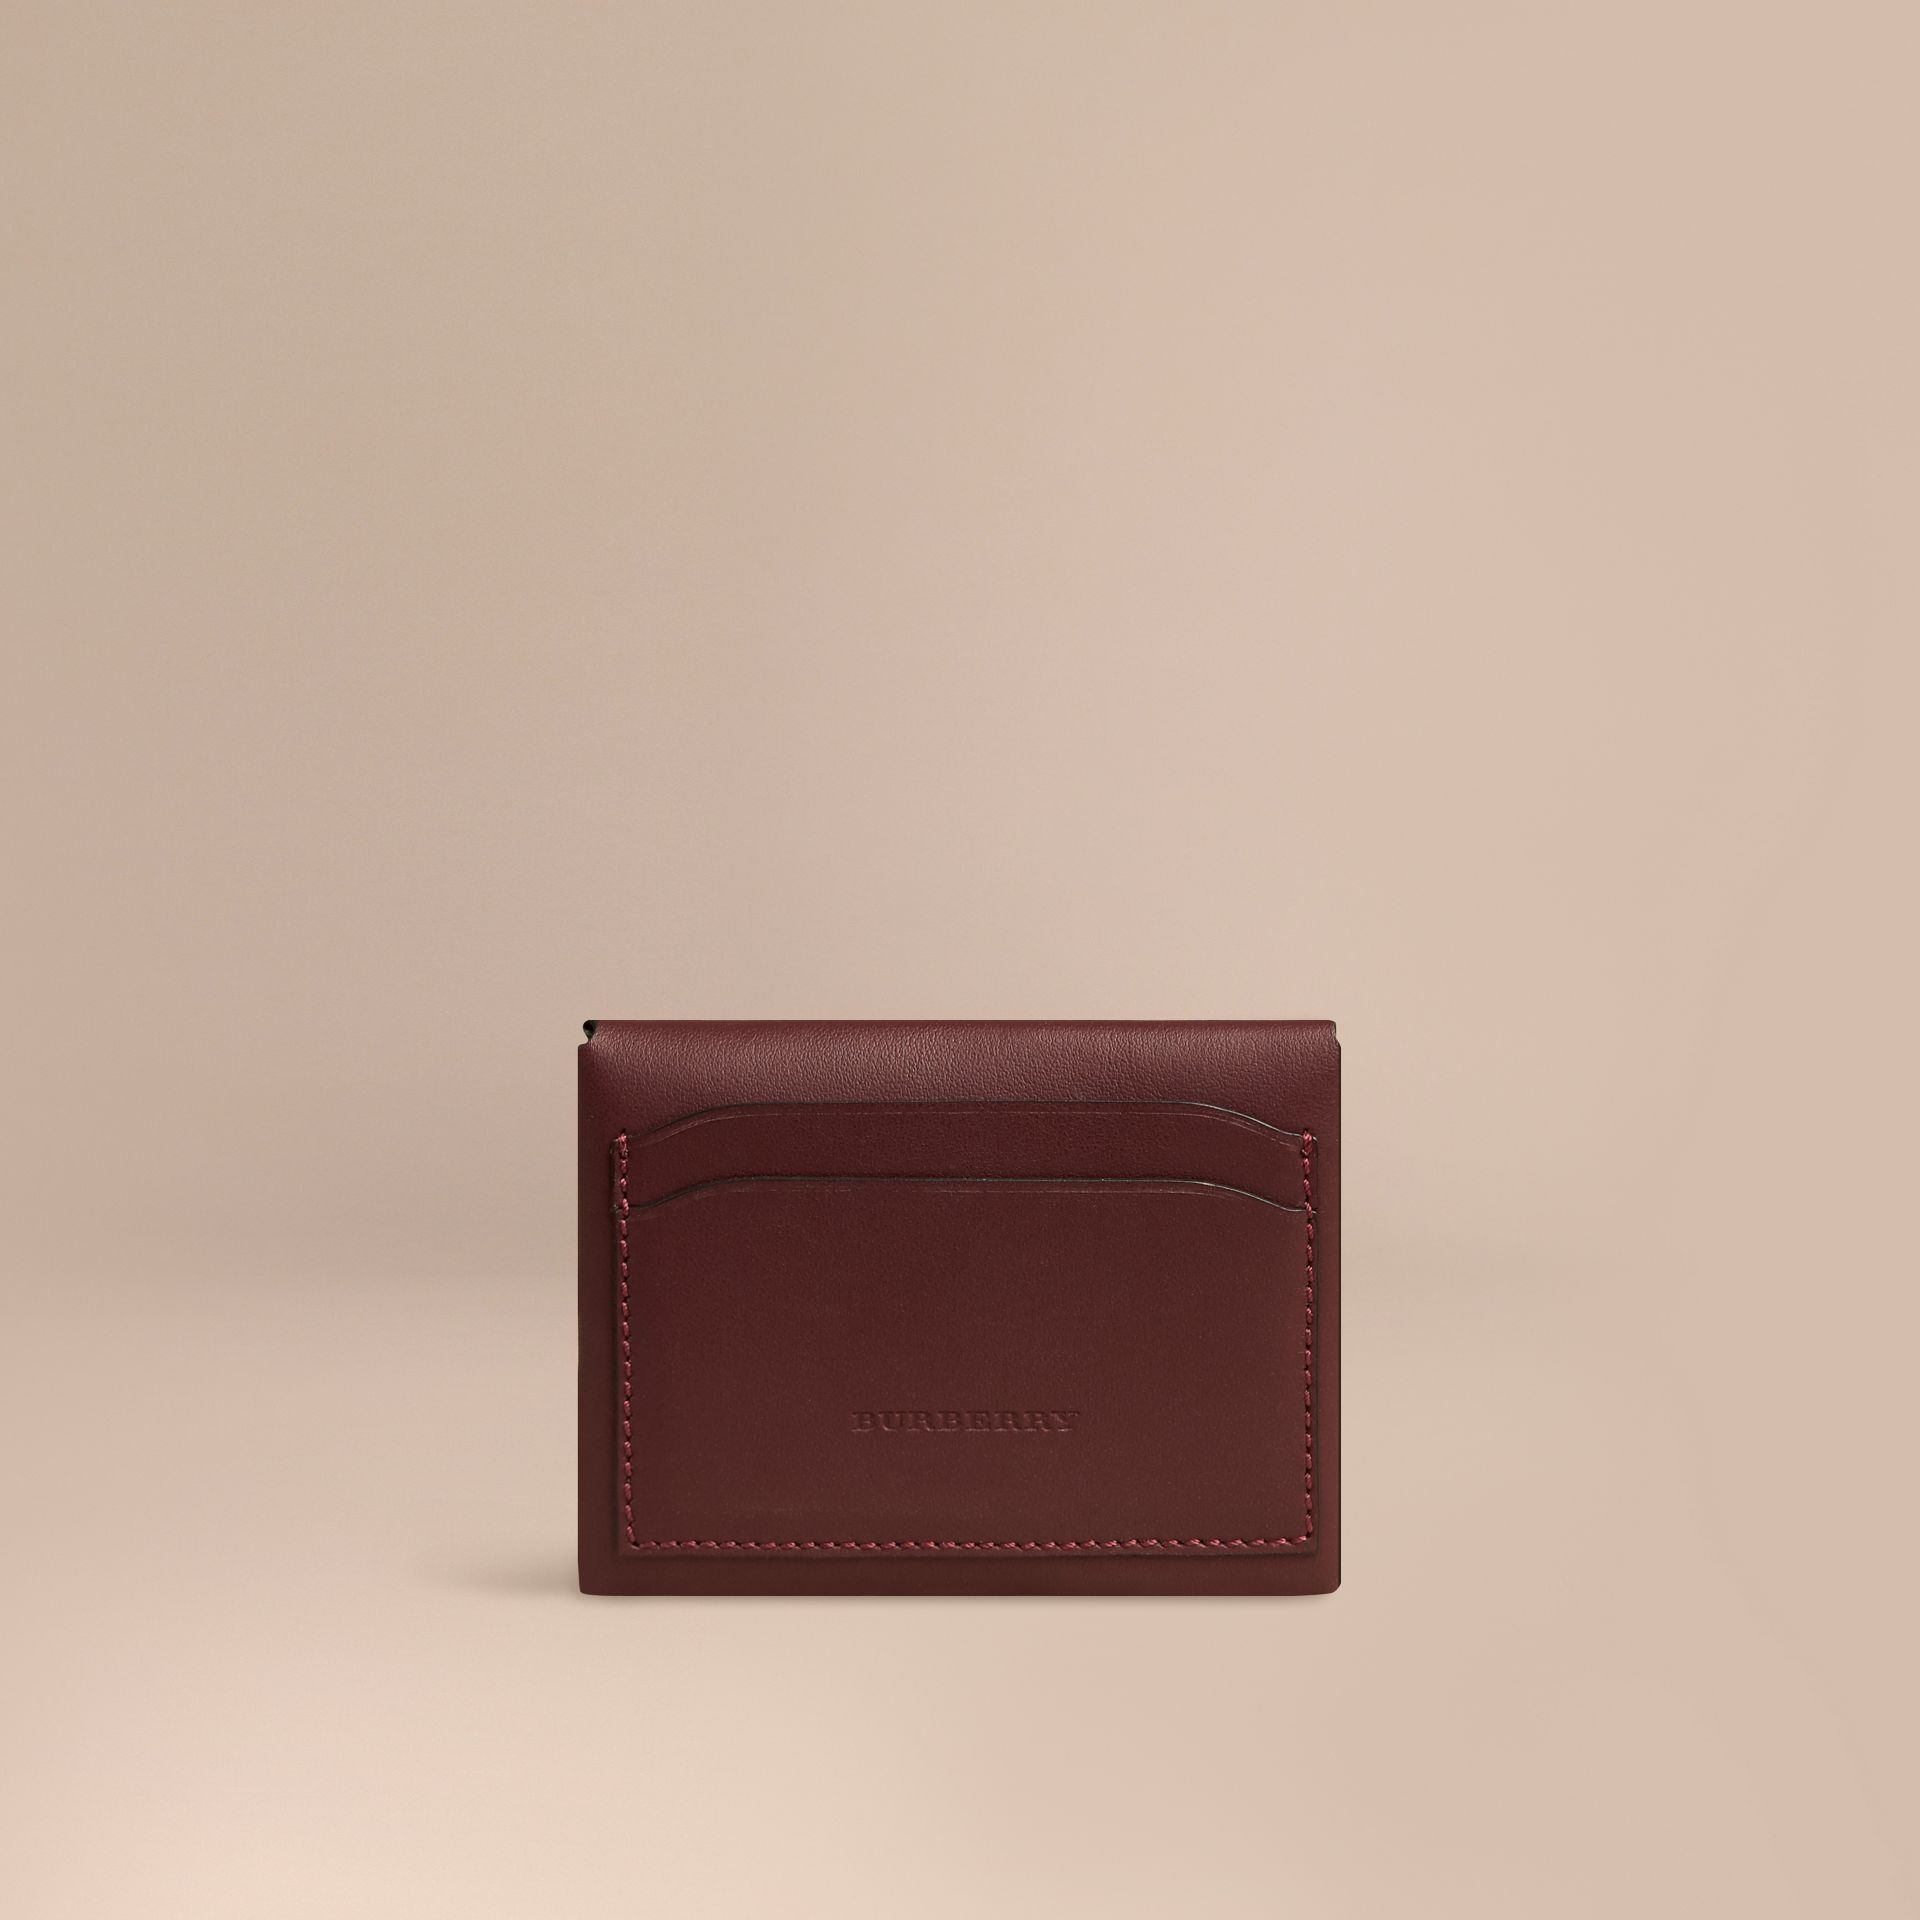 Porte monnaie en cuir bordeaux intense burberry for Porte 15 bordeaux